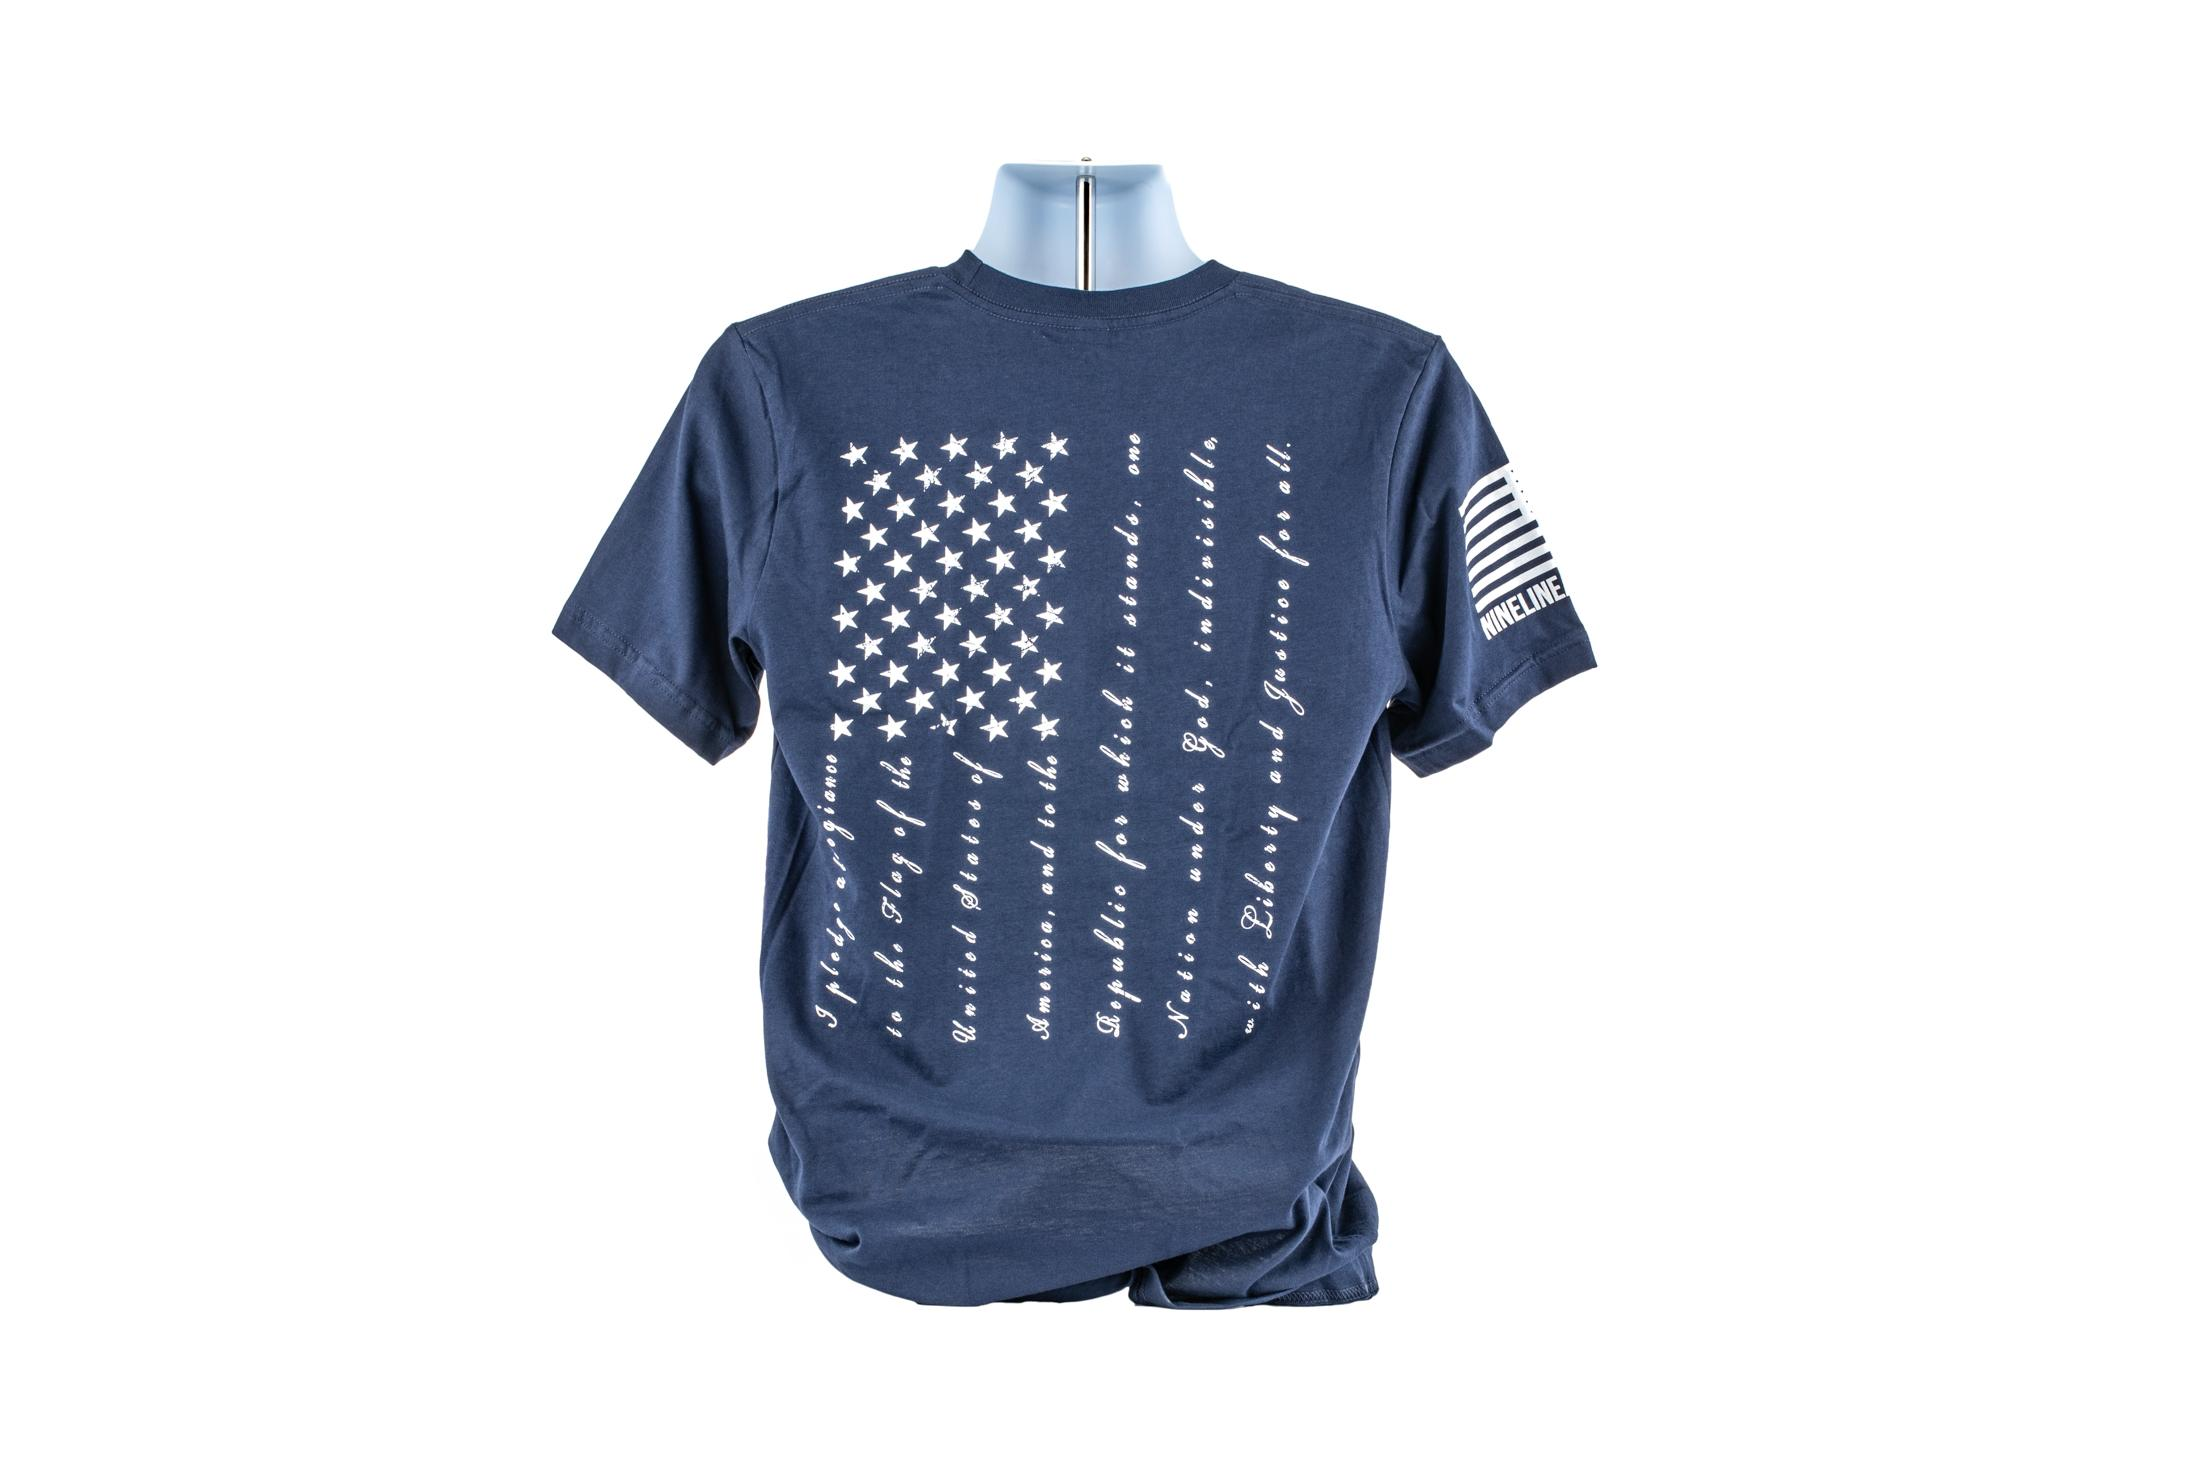 Nine Line Apparel The Pledge T-Shirt - Navy - L